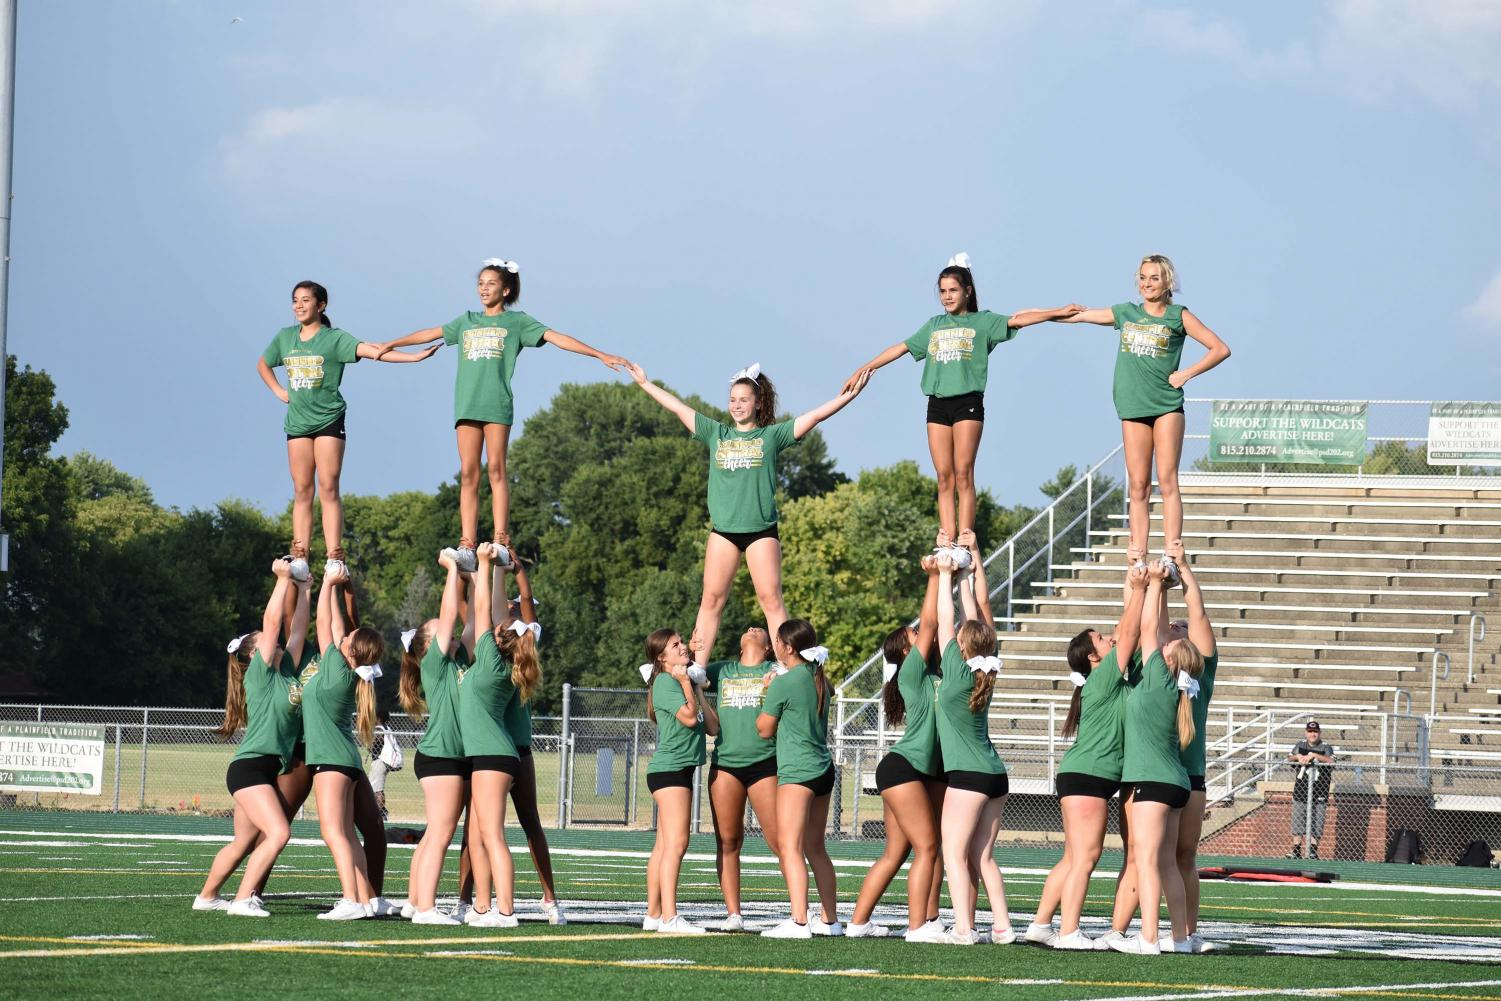 The+cheer+team+completes+a+pyramid+stunt+with+sophomore+Erin+Curry+in+the+center.